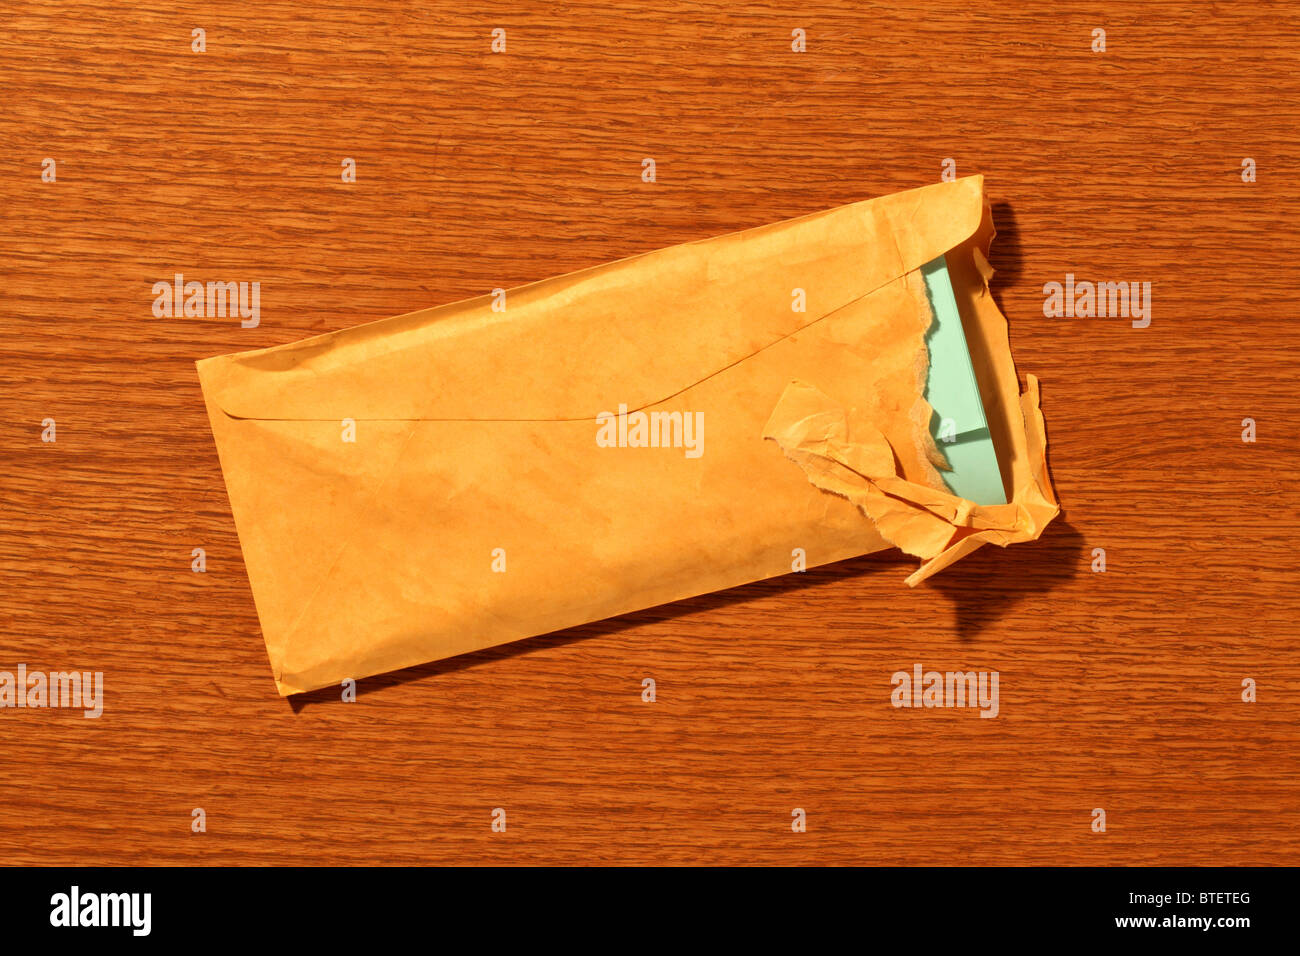 A used postal mailing envelope torn open. Brown wood grained background - Stock Image